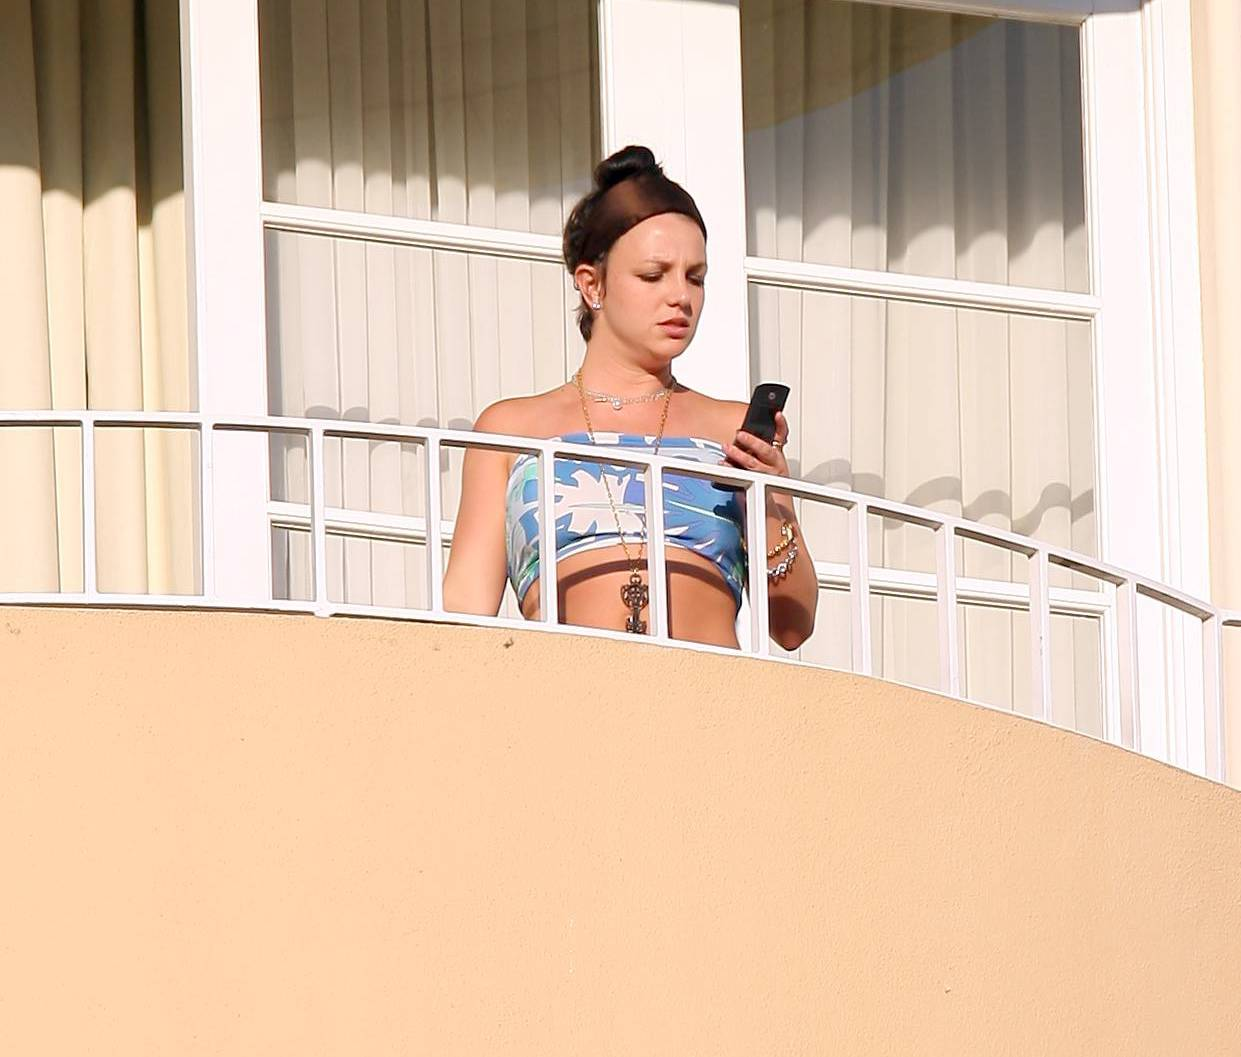 53189_celeb-city.eu_Britney_Spears_at_hotel_in_Beverly_Hills_09_123_1054lo.jpg